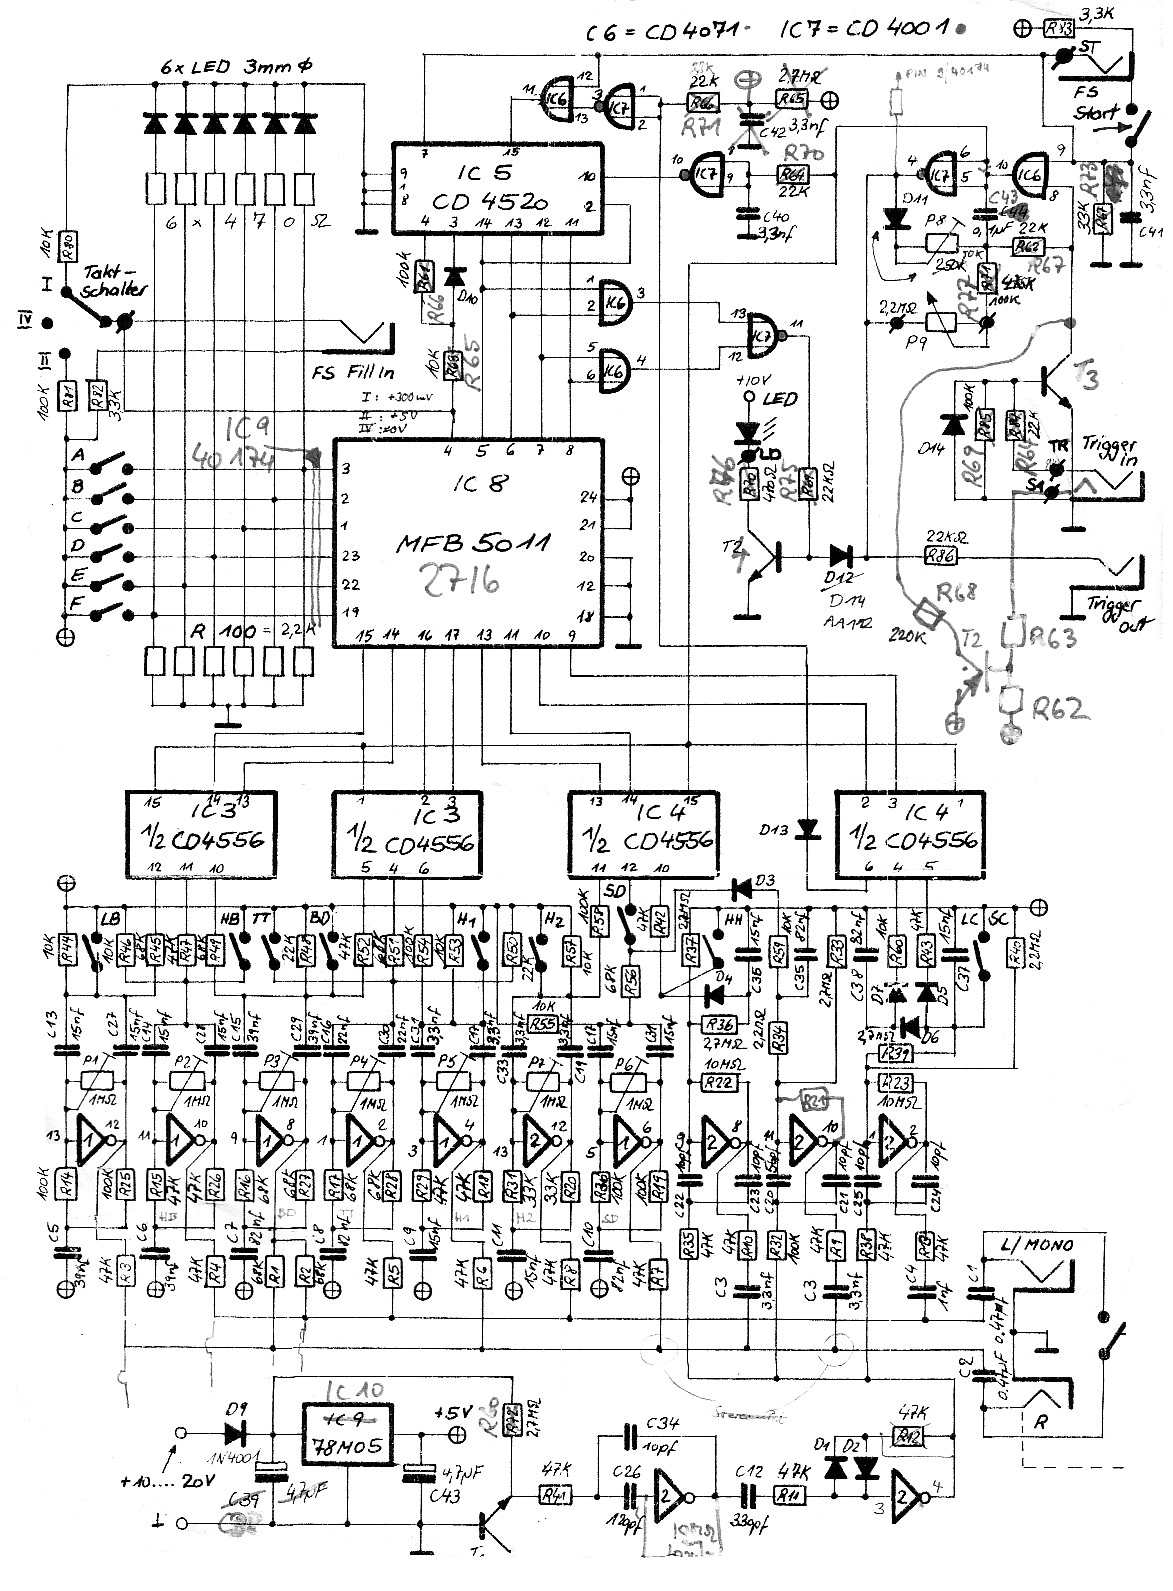 Korg Wiring Diagram Schemes Fj40 Harness Synthesizer Service Manuals Free Download Home Electrical Diagrams